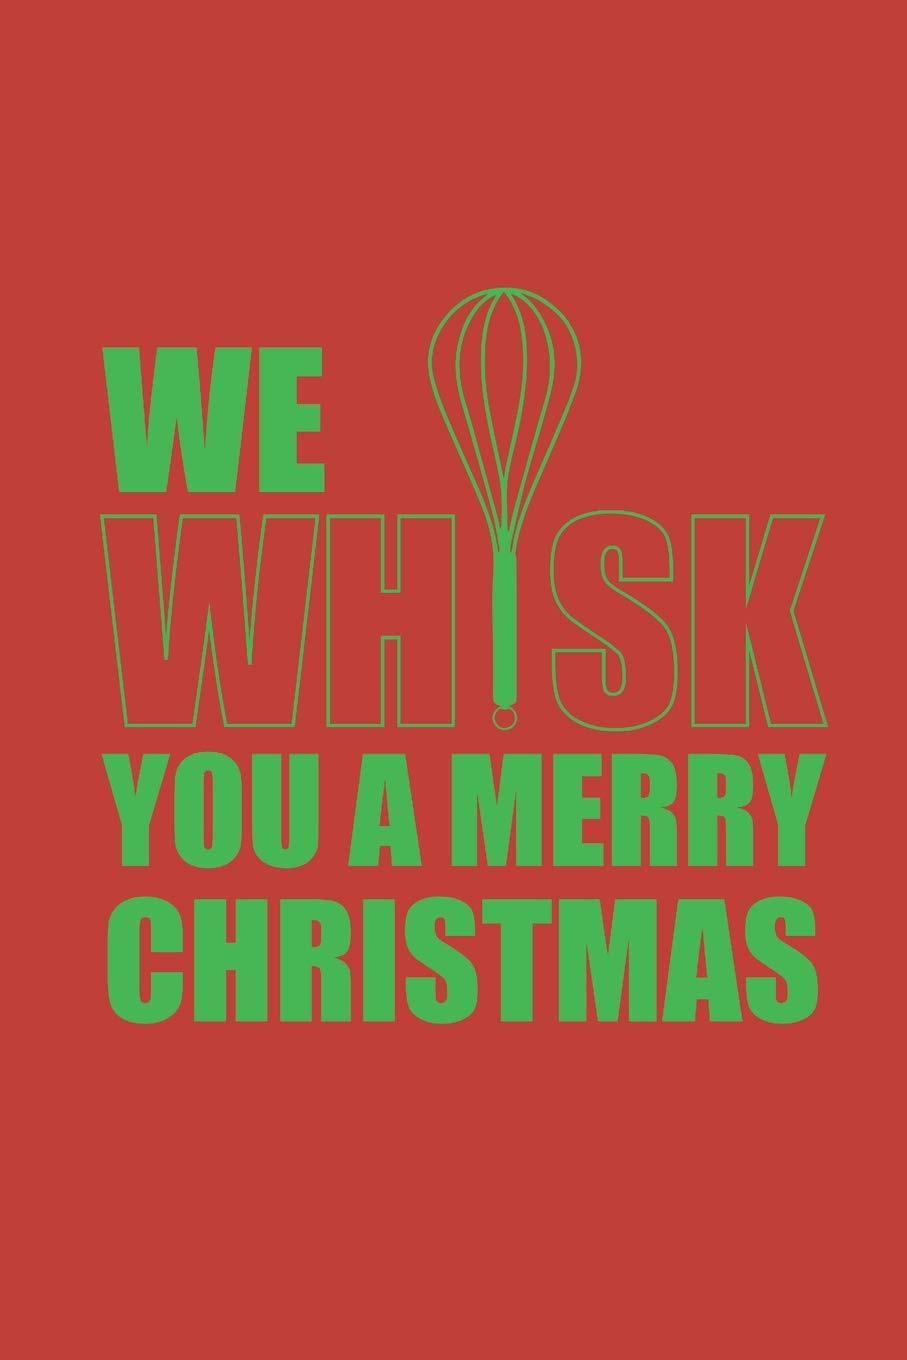 Merry Christmas Writing Images.We Whisk You A Merry Christmas Blank Lined Writing Journal